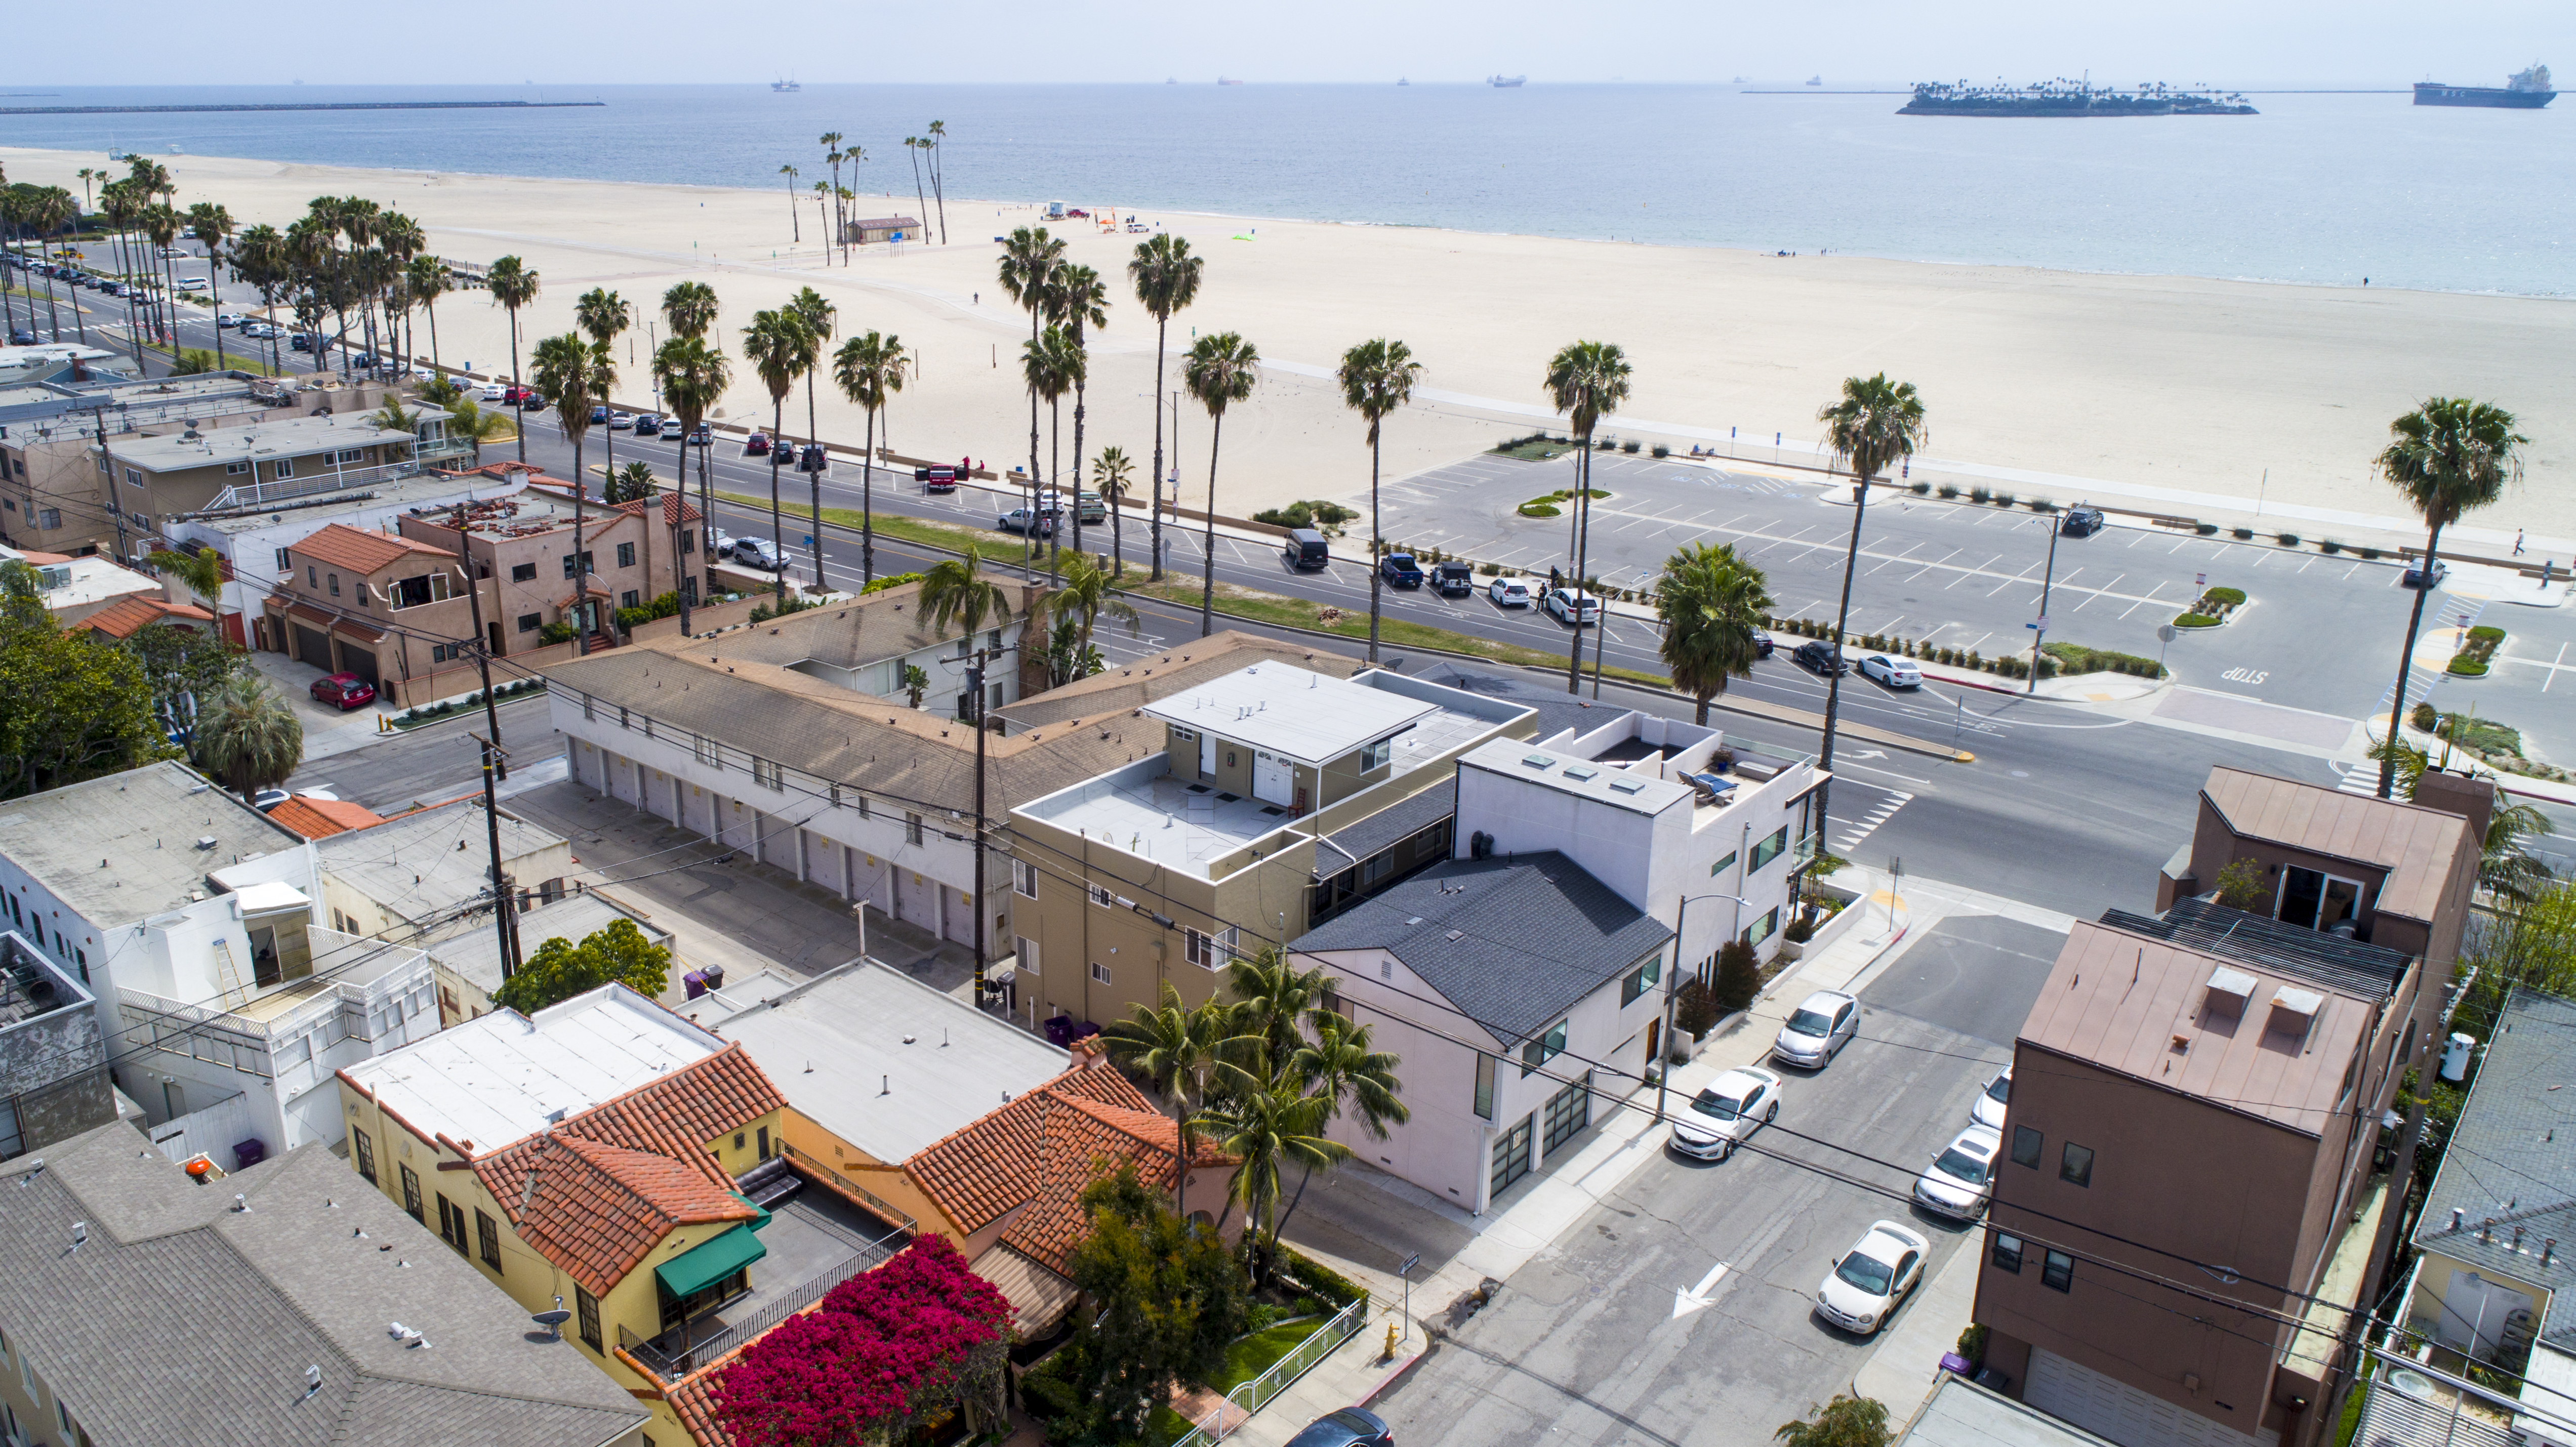 Cbre Annouces Sale Of Oceanfront Multifamily Property In Long Beach,